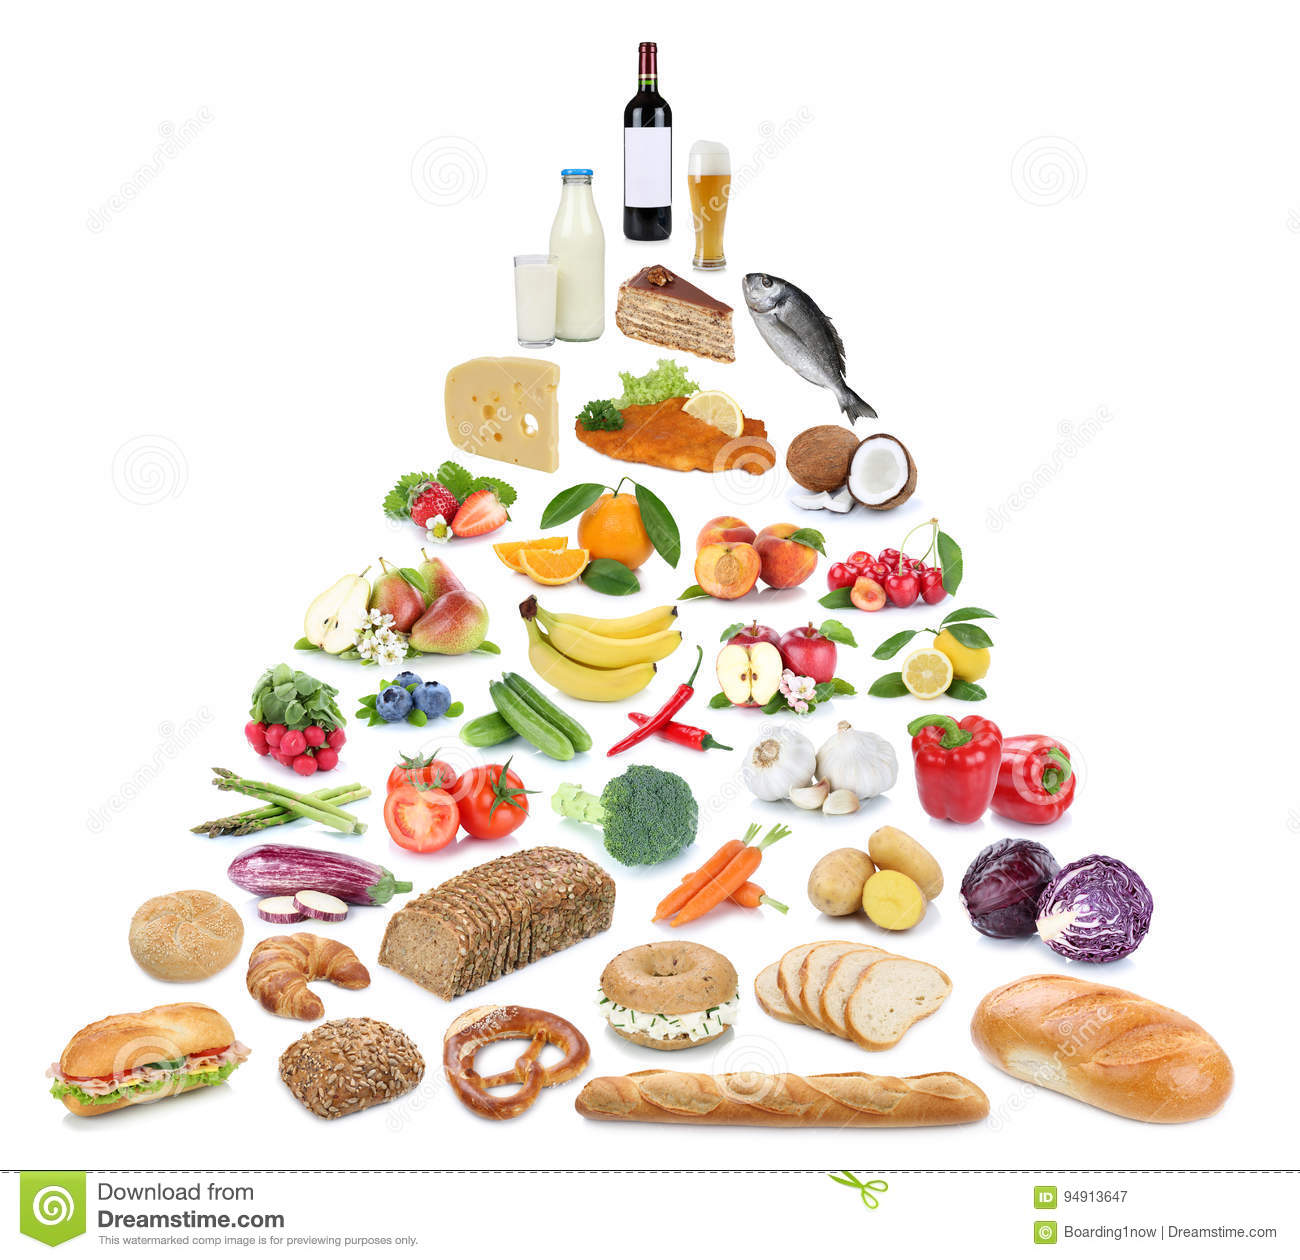 Food pyramid healthy eating fruits and vegetables fruit collection isolated